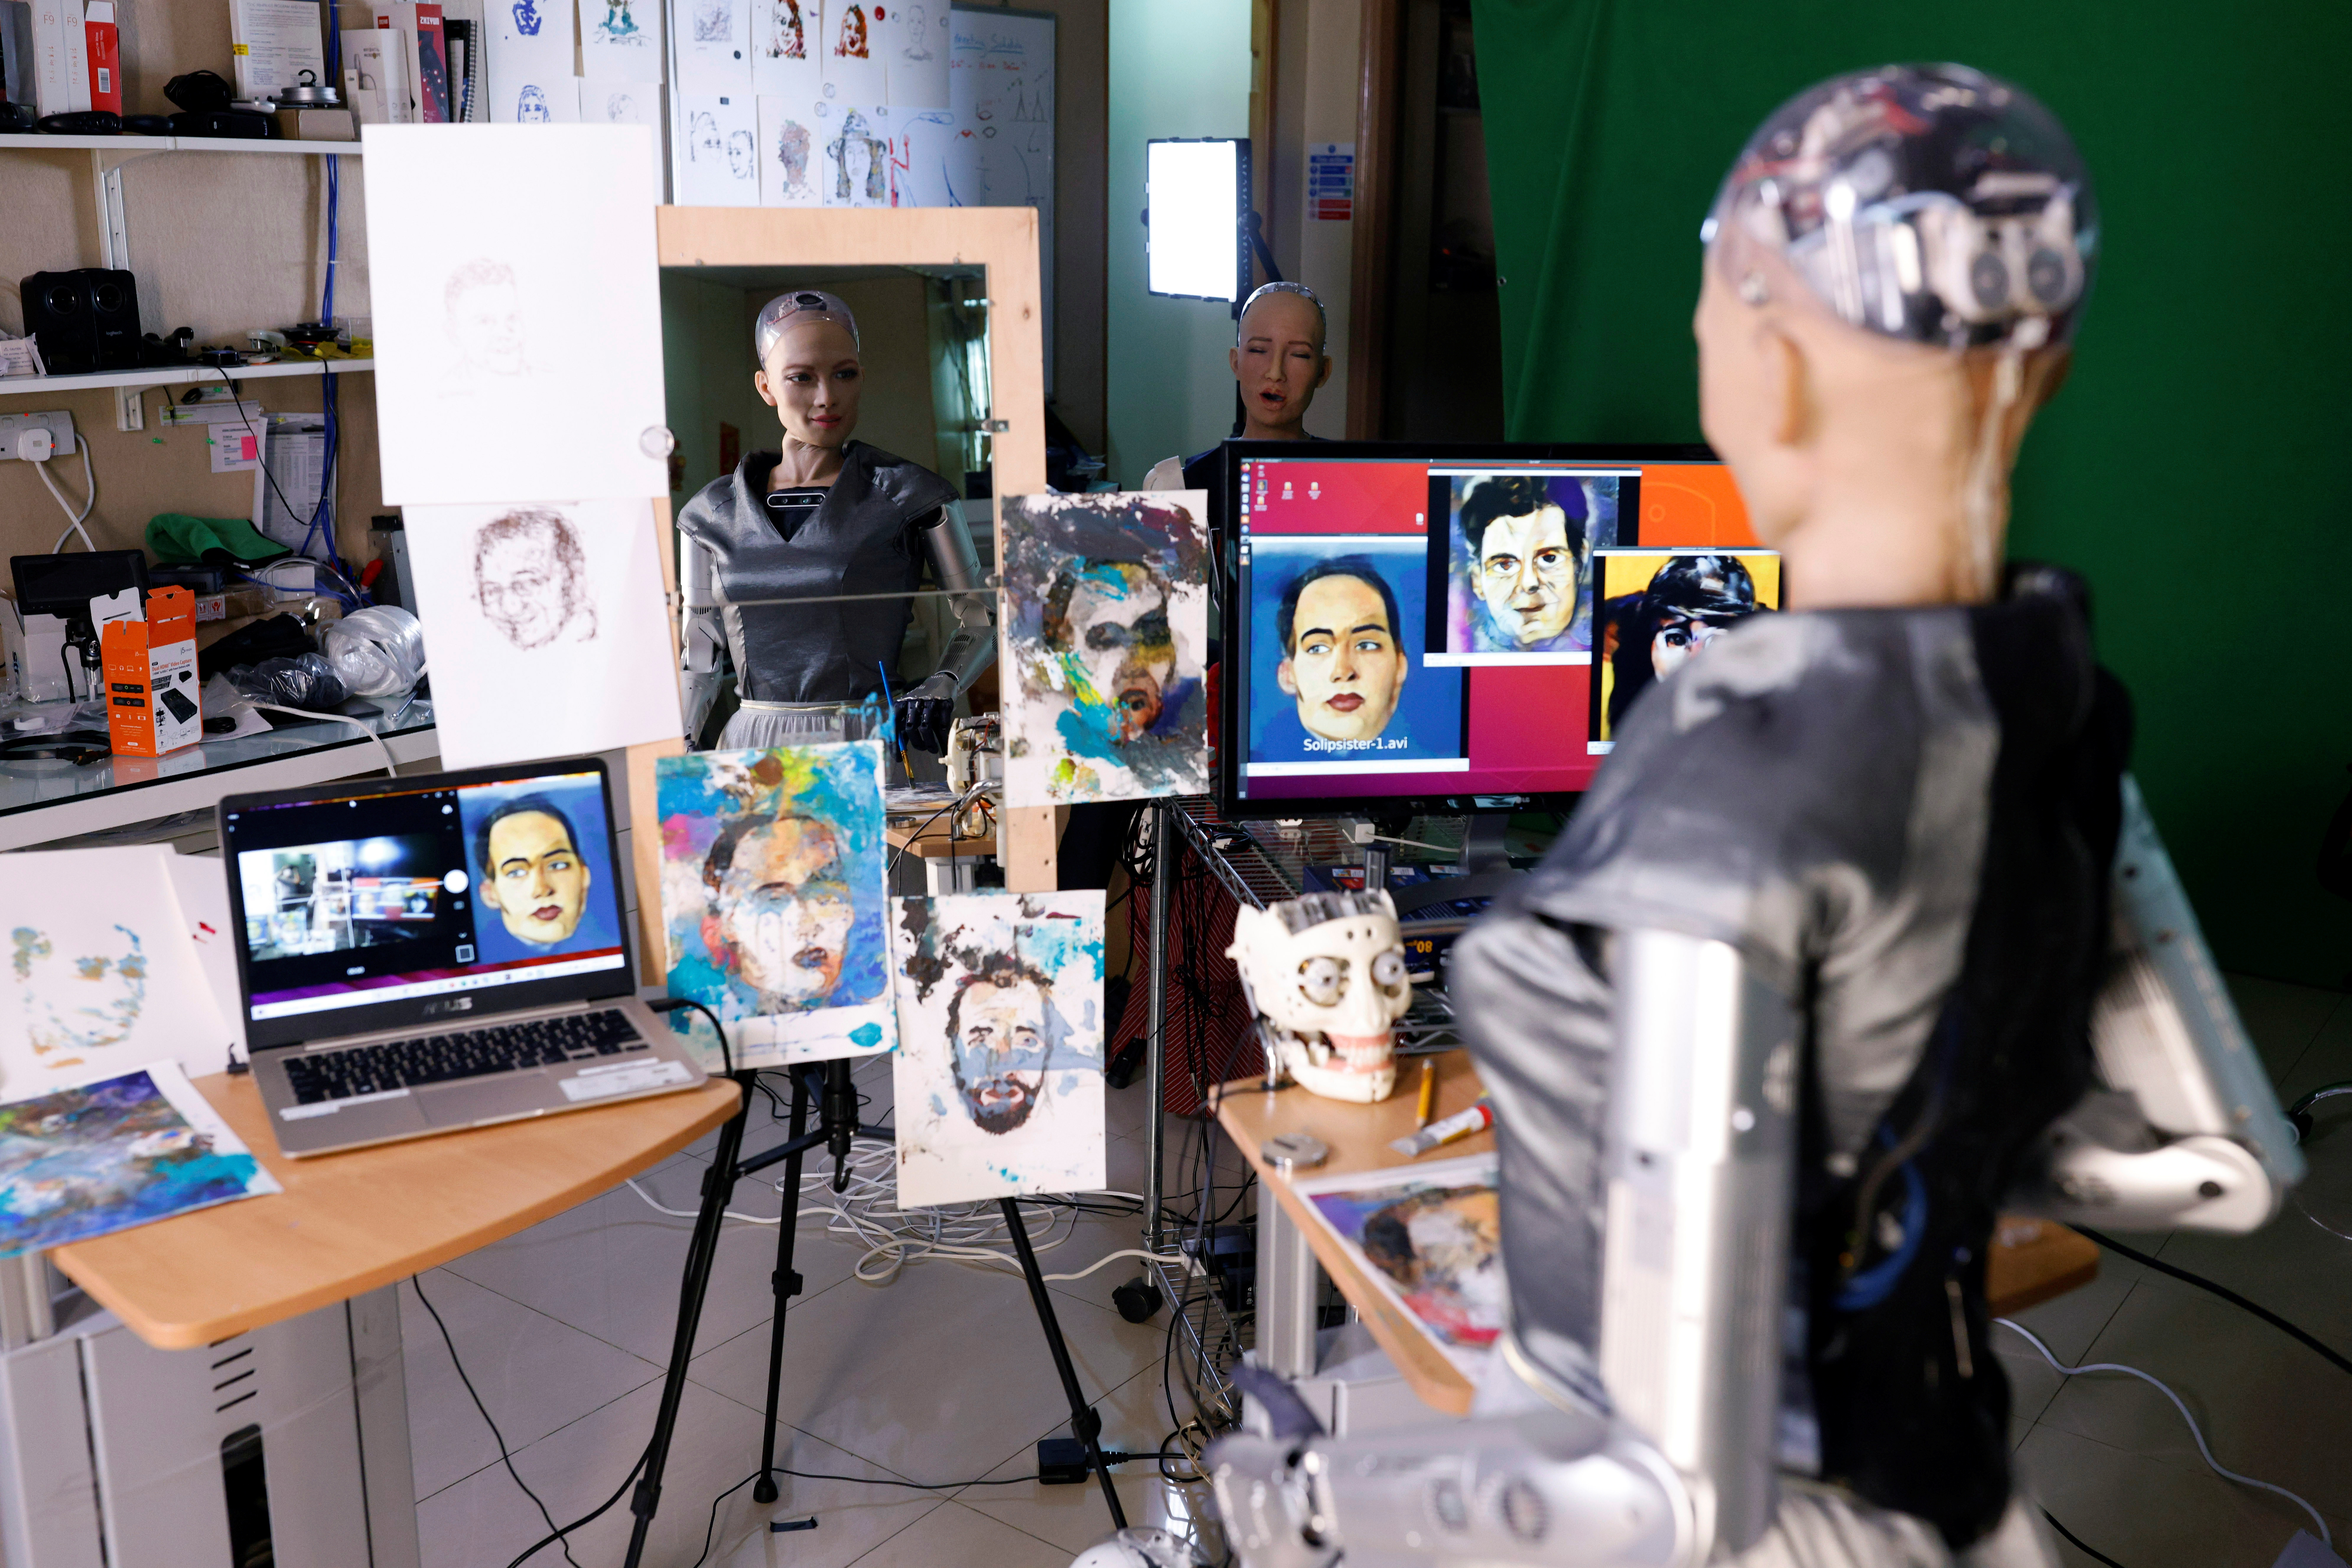 a humanoid robot is pictured painting